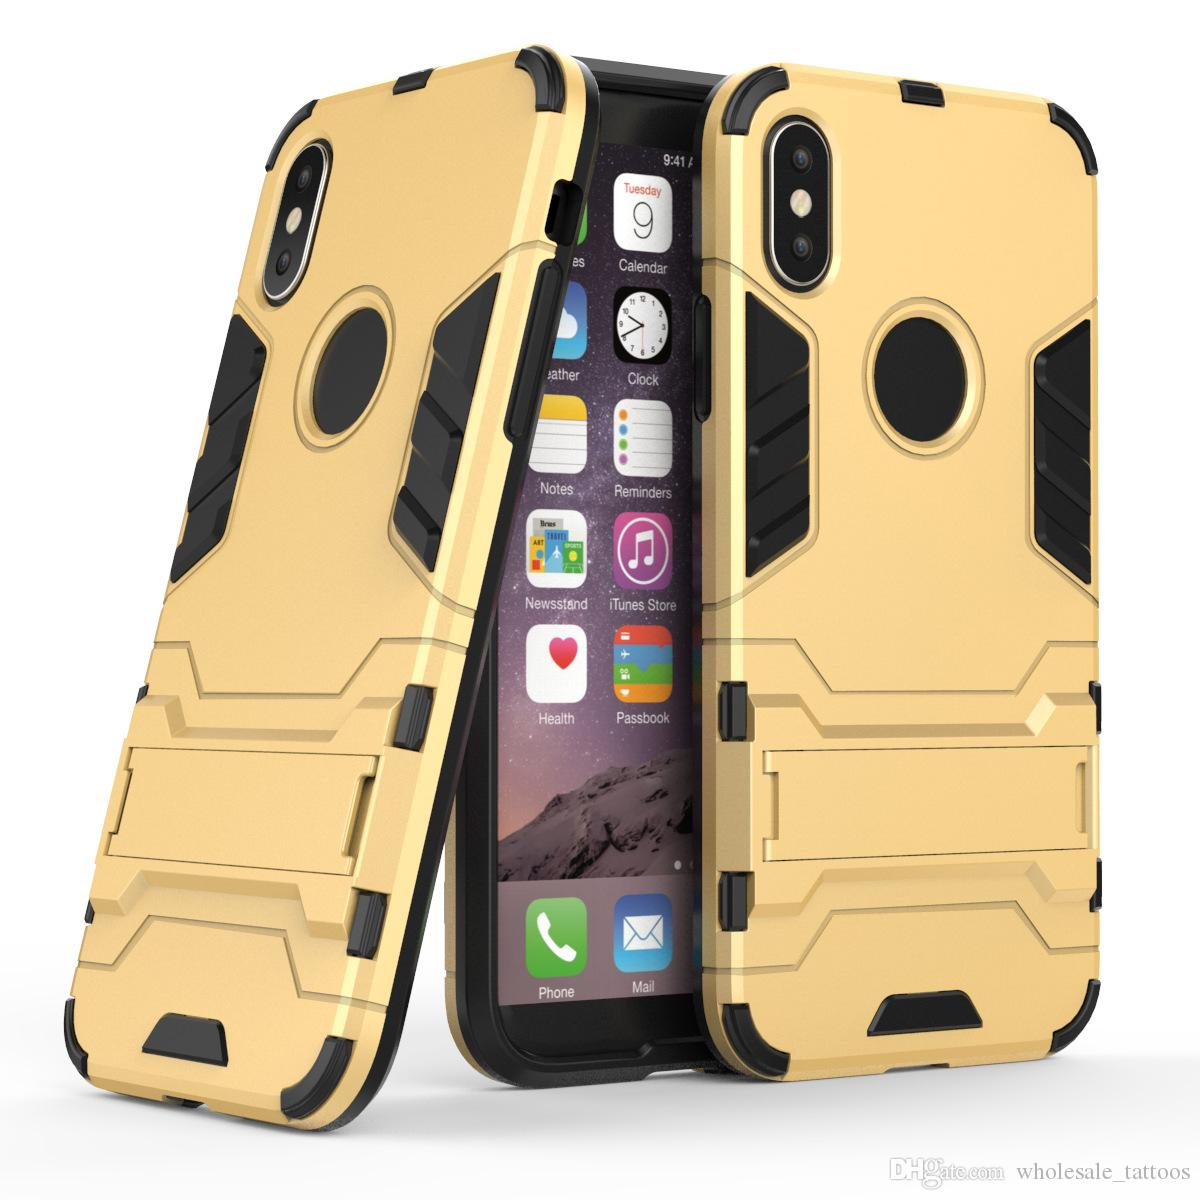 finest selection cc160 95716 Iron Man Heavy Duty Armor Phone Case Sport Cover Shockproof Strong With  Kickstand For LG V10 V20 V30 Stylo 3 G4 Pro Stylo 3 Plus LS777